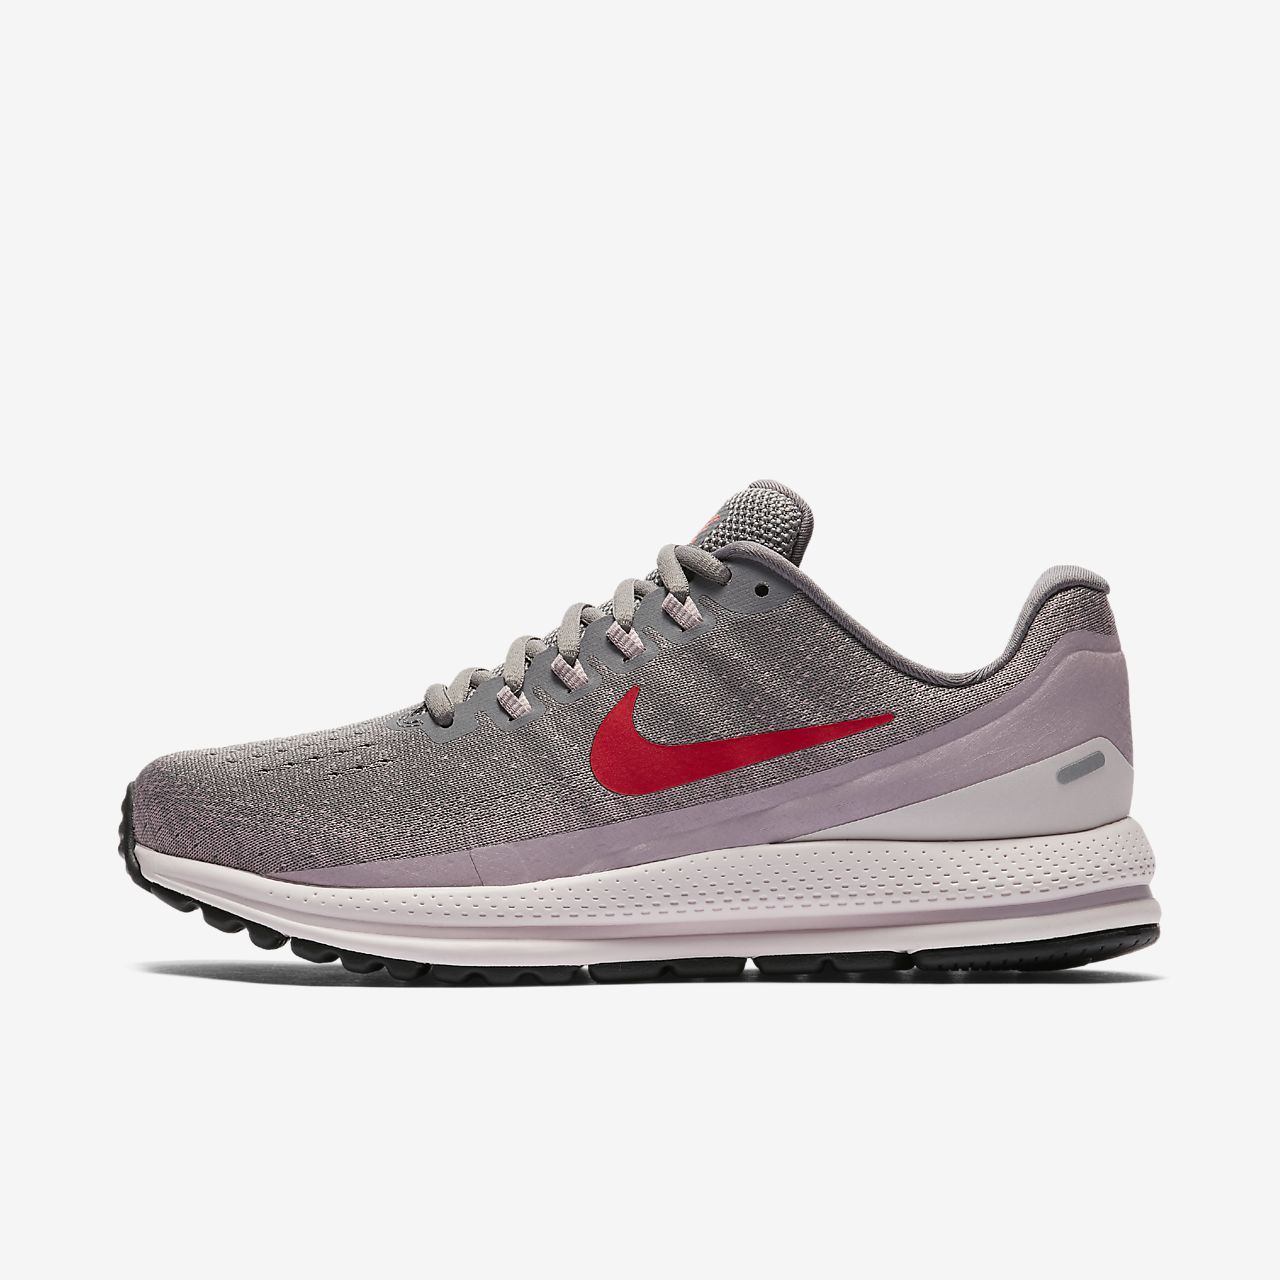 brand new b39e9 68382 Chaussure de running Nike Air Zoom Vomero 13 pour Femme. Nike.com BE